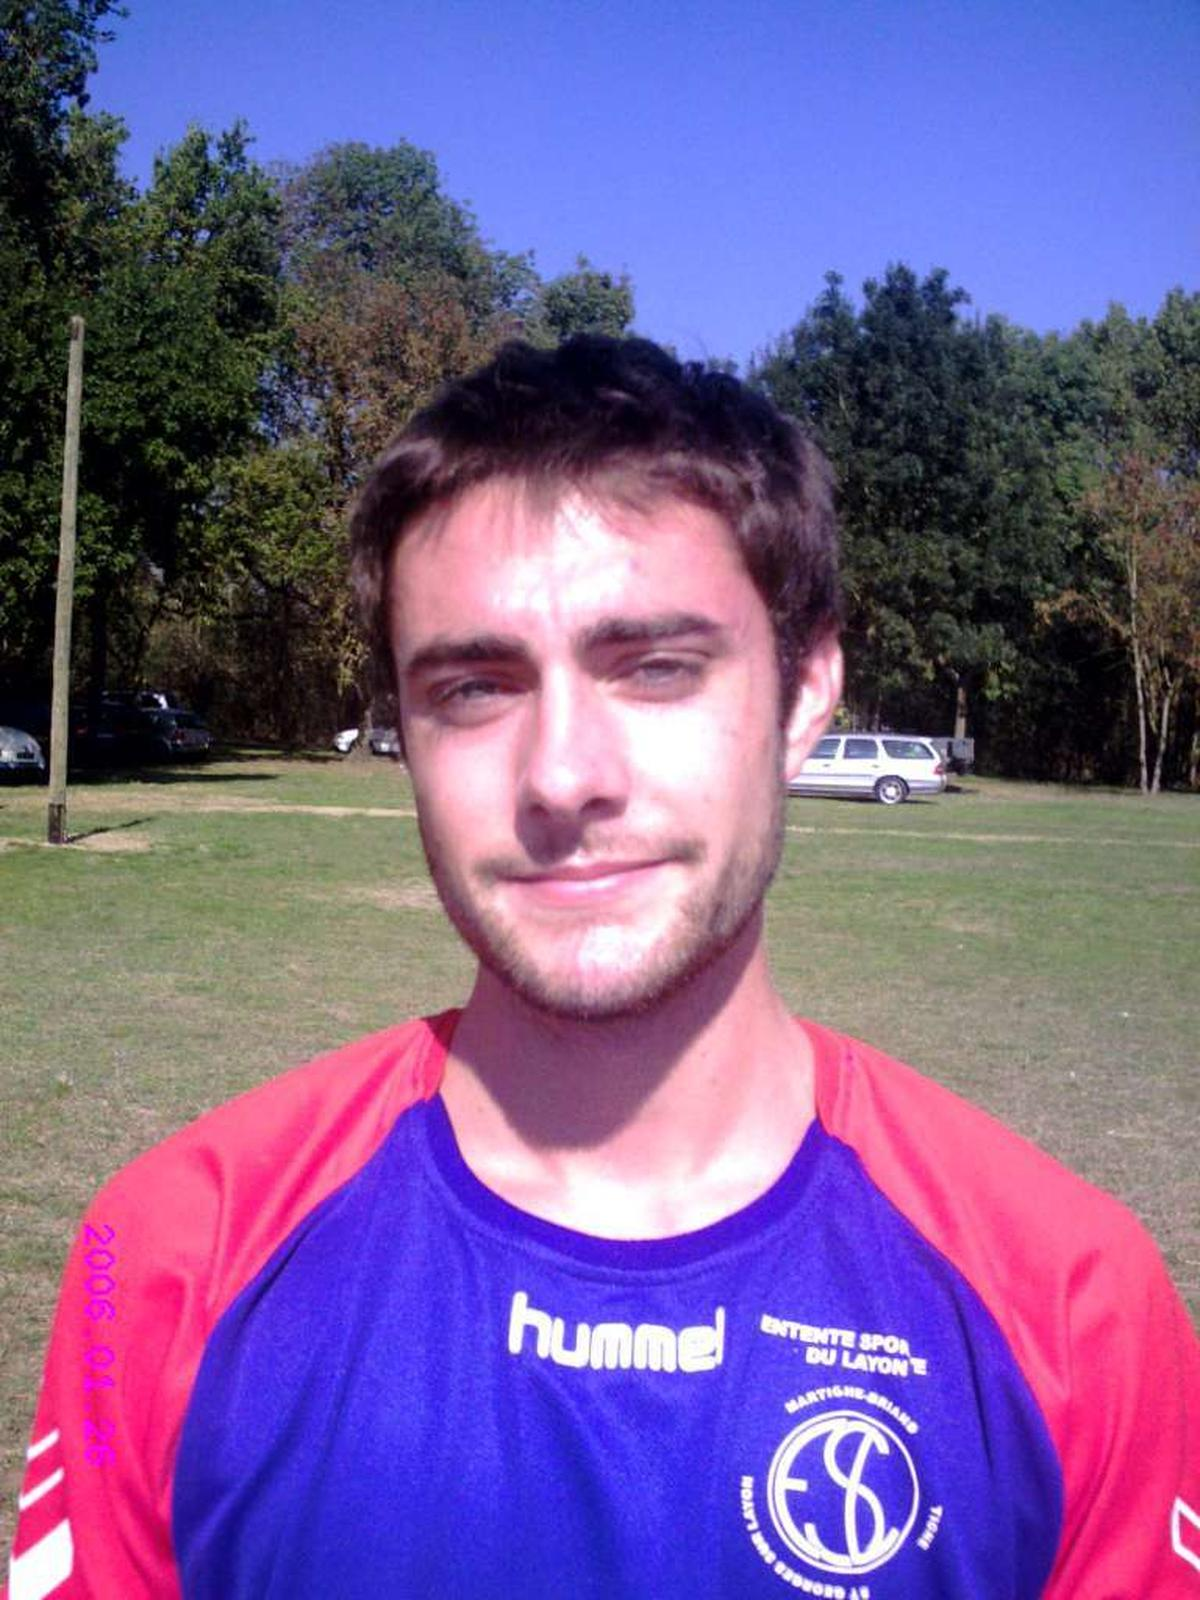 Joueur - <b>Olivier CARRET</b> - club Football Entente Sportive du Layon - Footeo - olivier-carret__mxkfpr